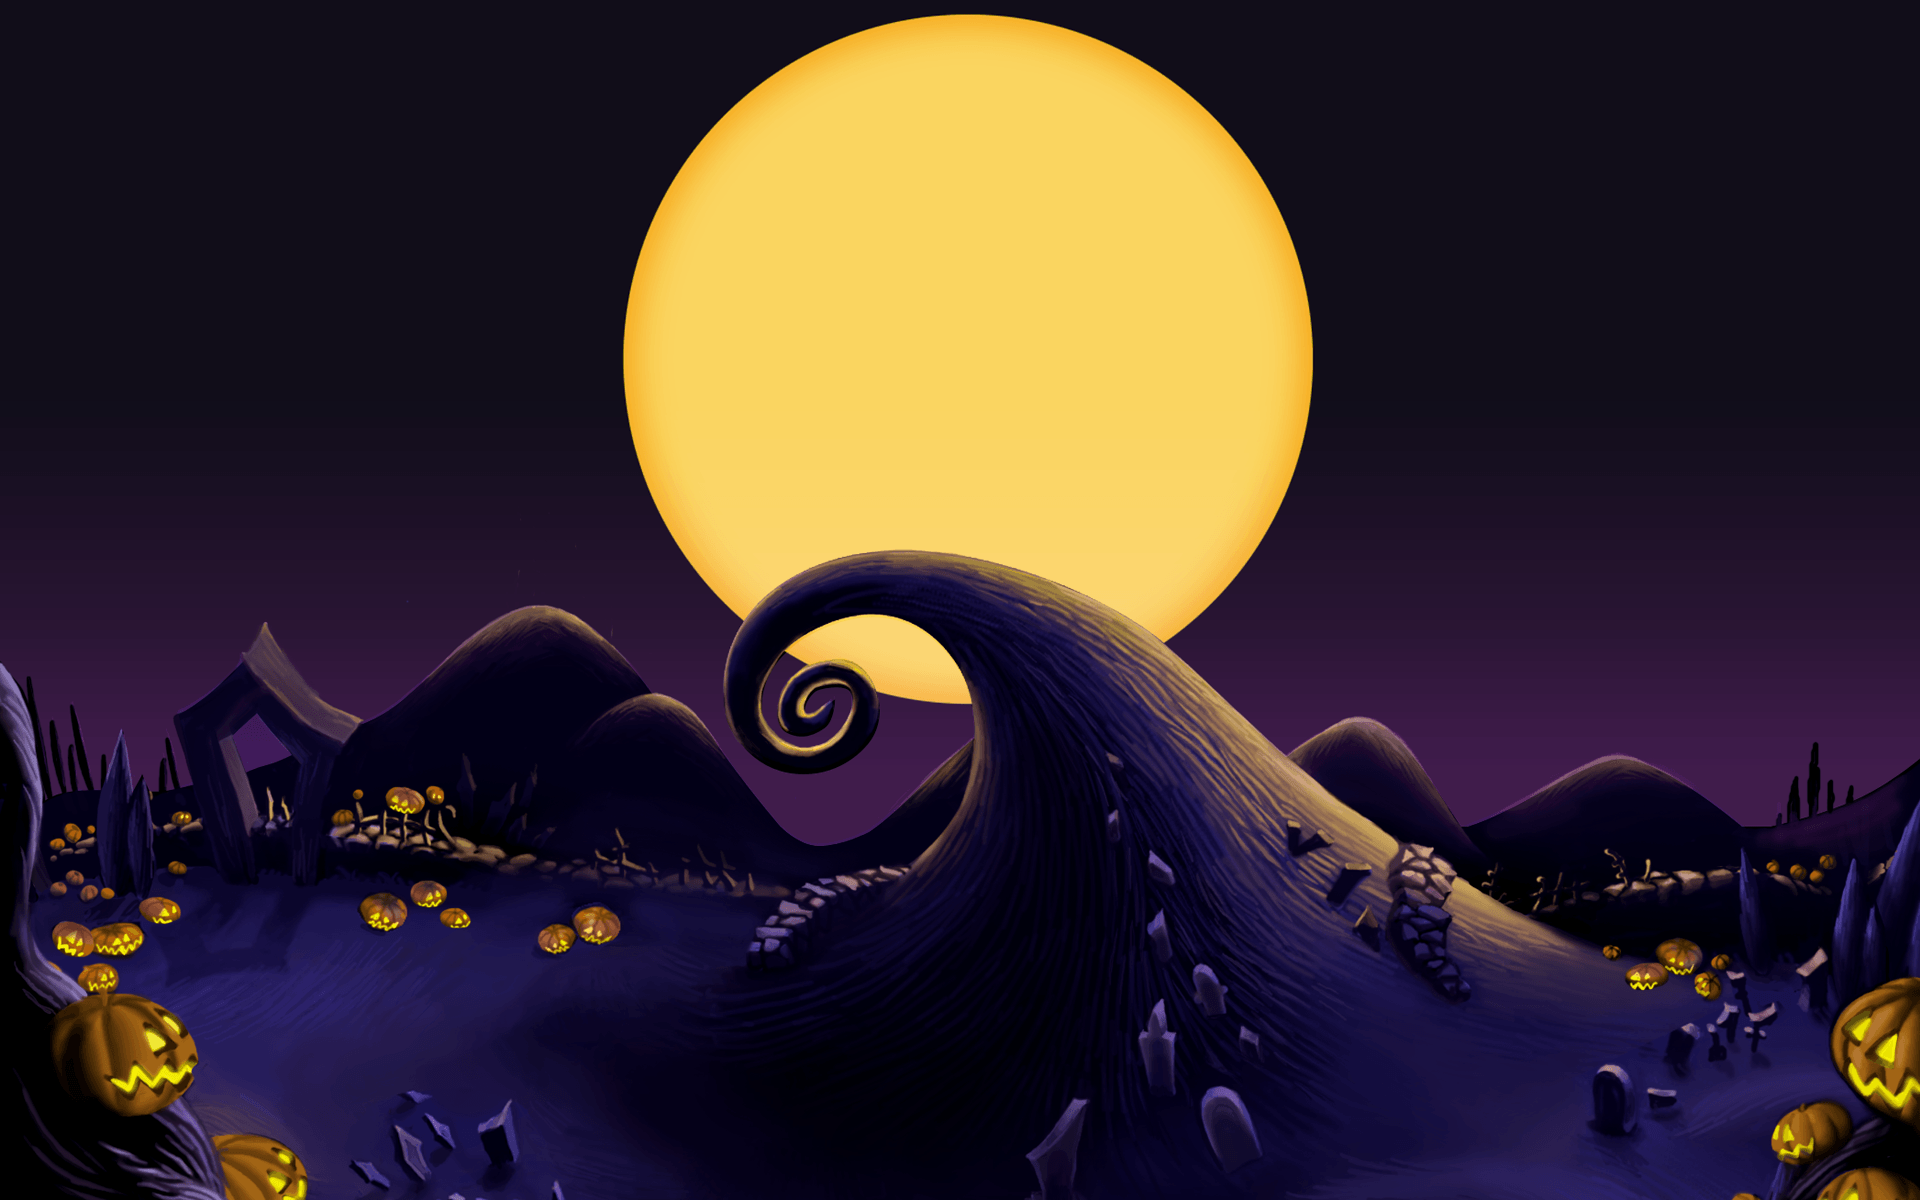 Nightmare Before Christmas 2 Backgrounds | Wallruru.com